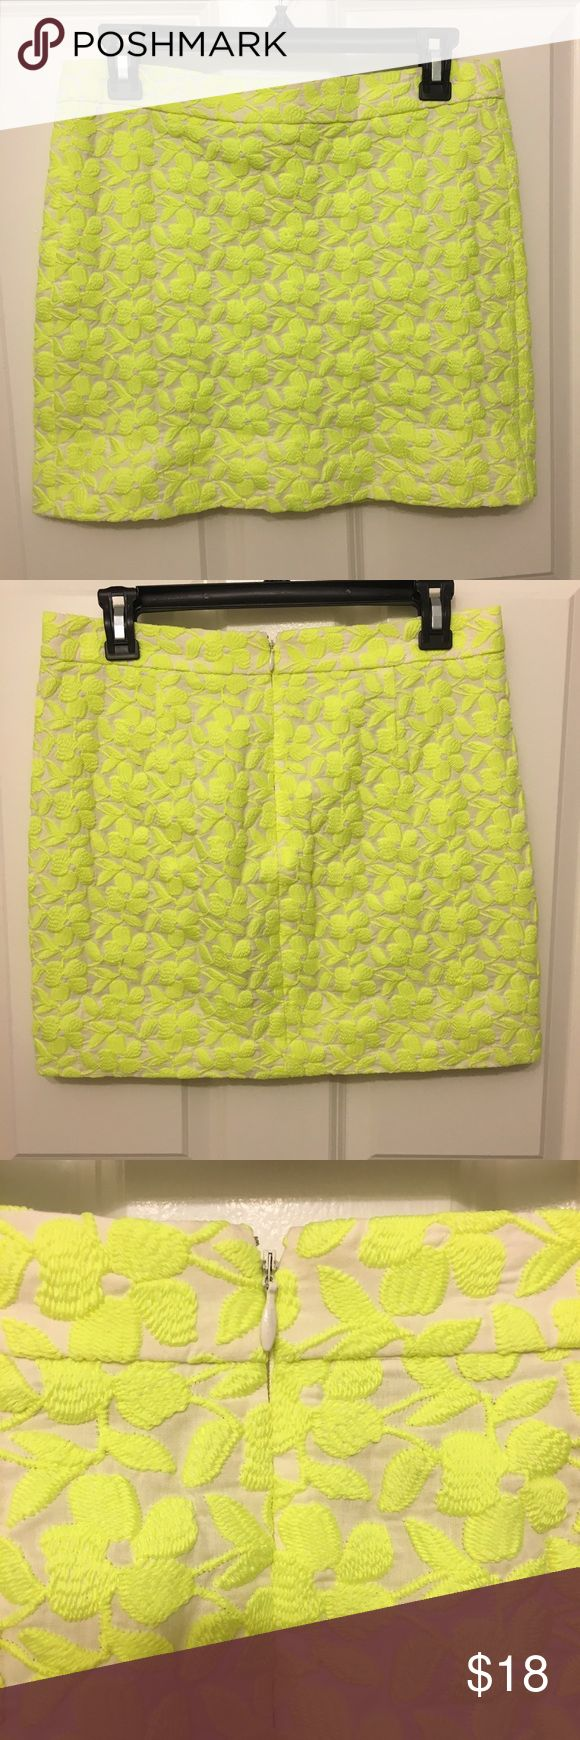 """J.Crew Neon Yellow Skirt J.Crew meon yellow embroidered mini skirt. Size 2 has a hidden zipper on the back, Fully lined. Waist 32"""" Length 16"""" in Very good condition no hold, no stains. J. Crew Skirts Mini"""